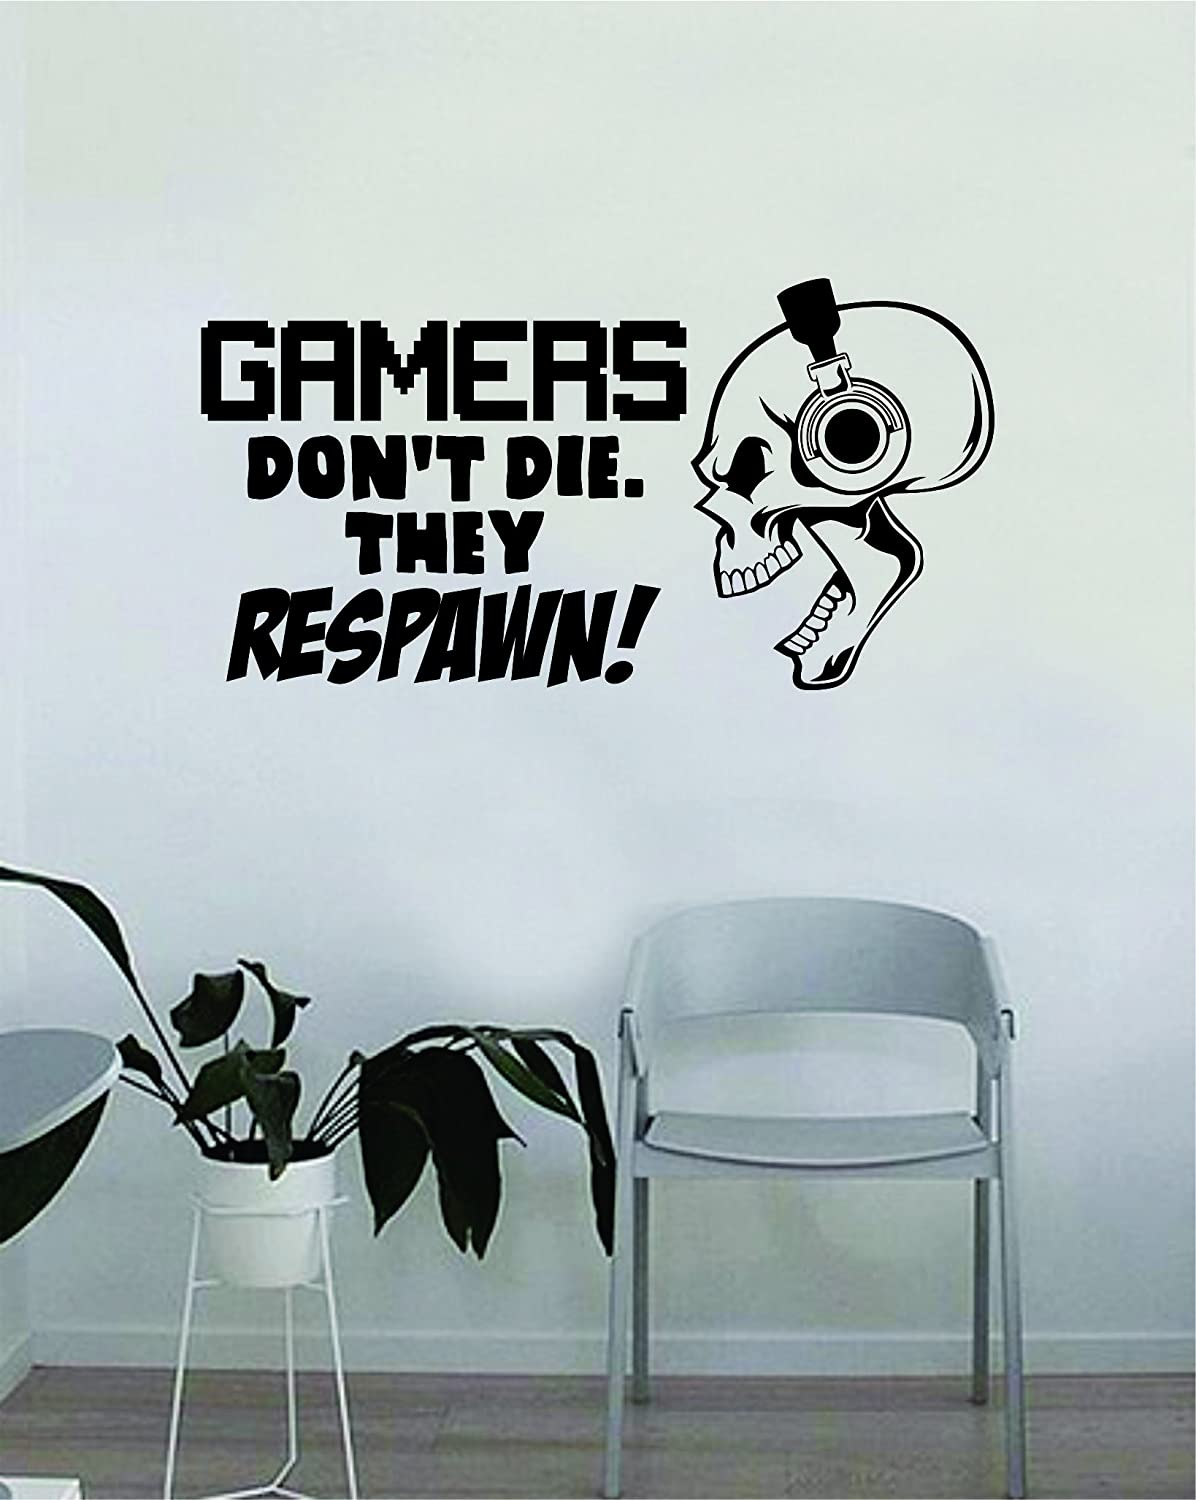 Gamers Dontt Die They Respawn Wall Decal Video Game Gifts Kids PS4 Xbox Gaming Quote Poster Stickers Boys Room Playroom 58 28cm